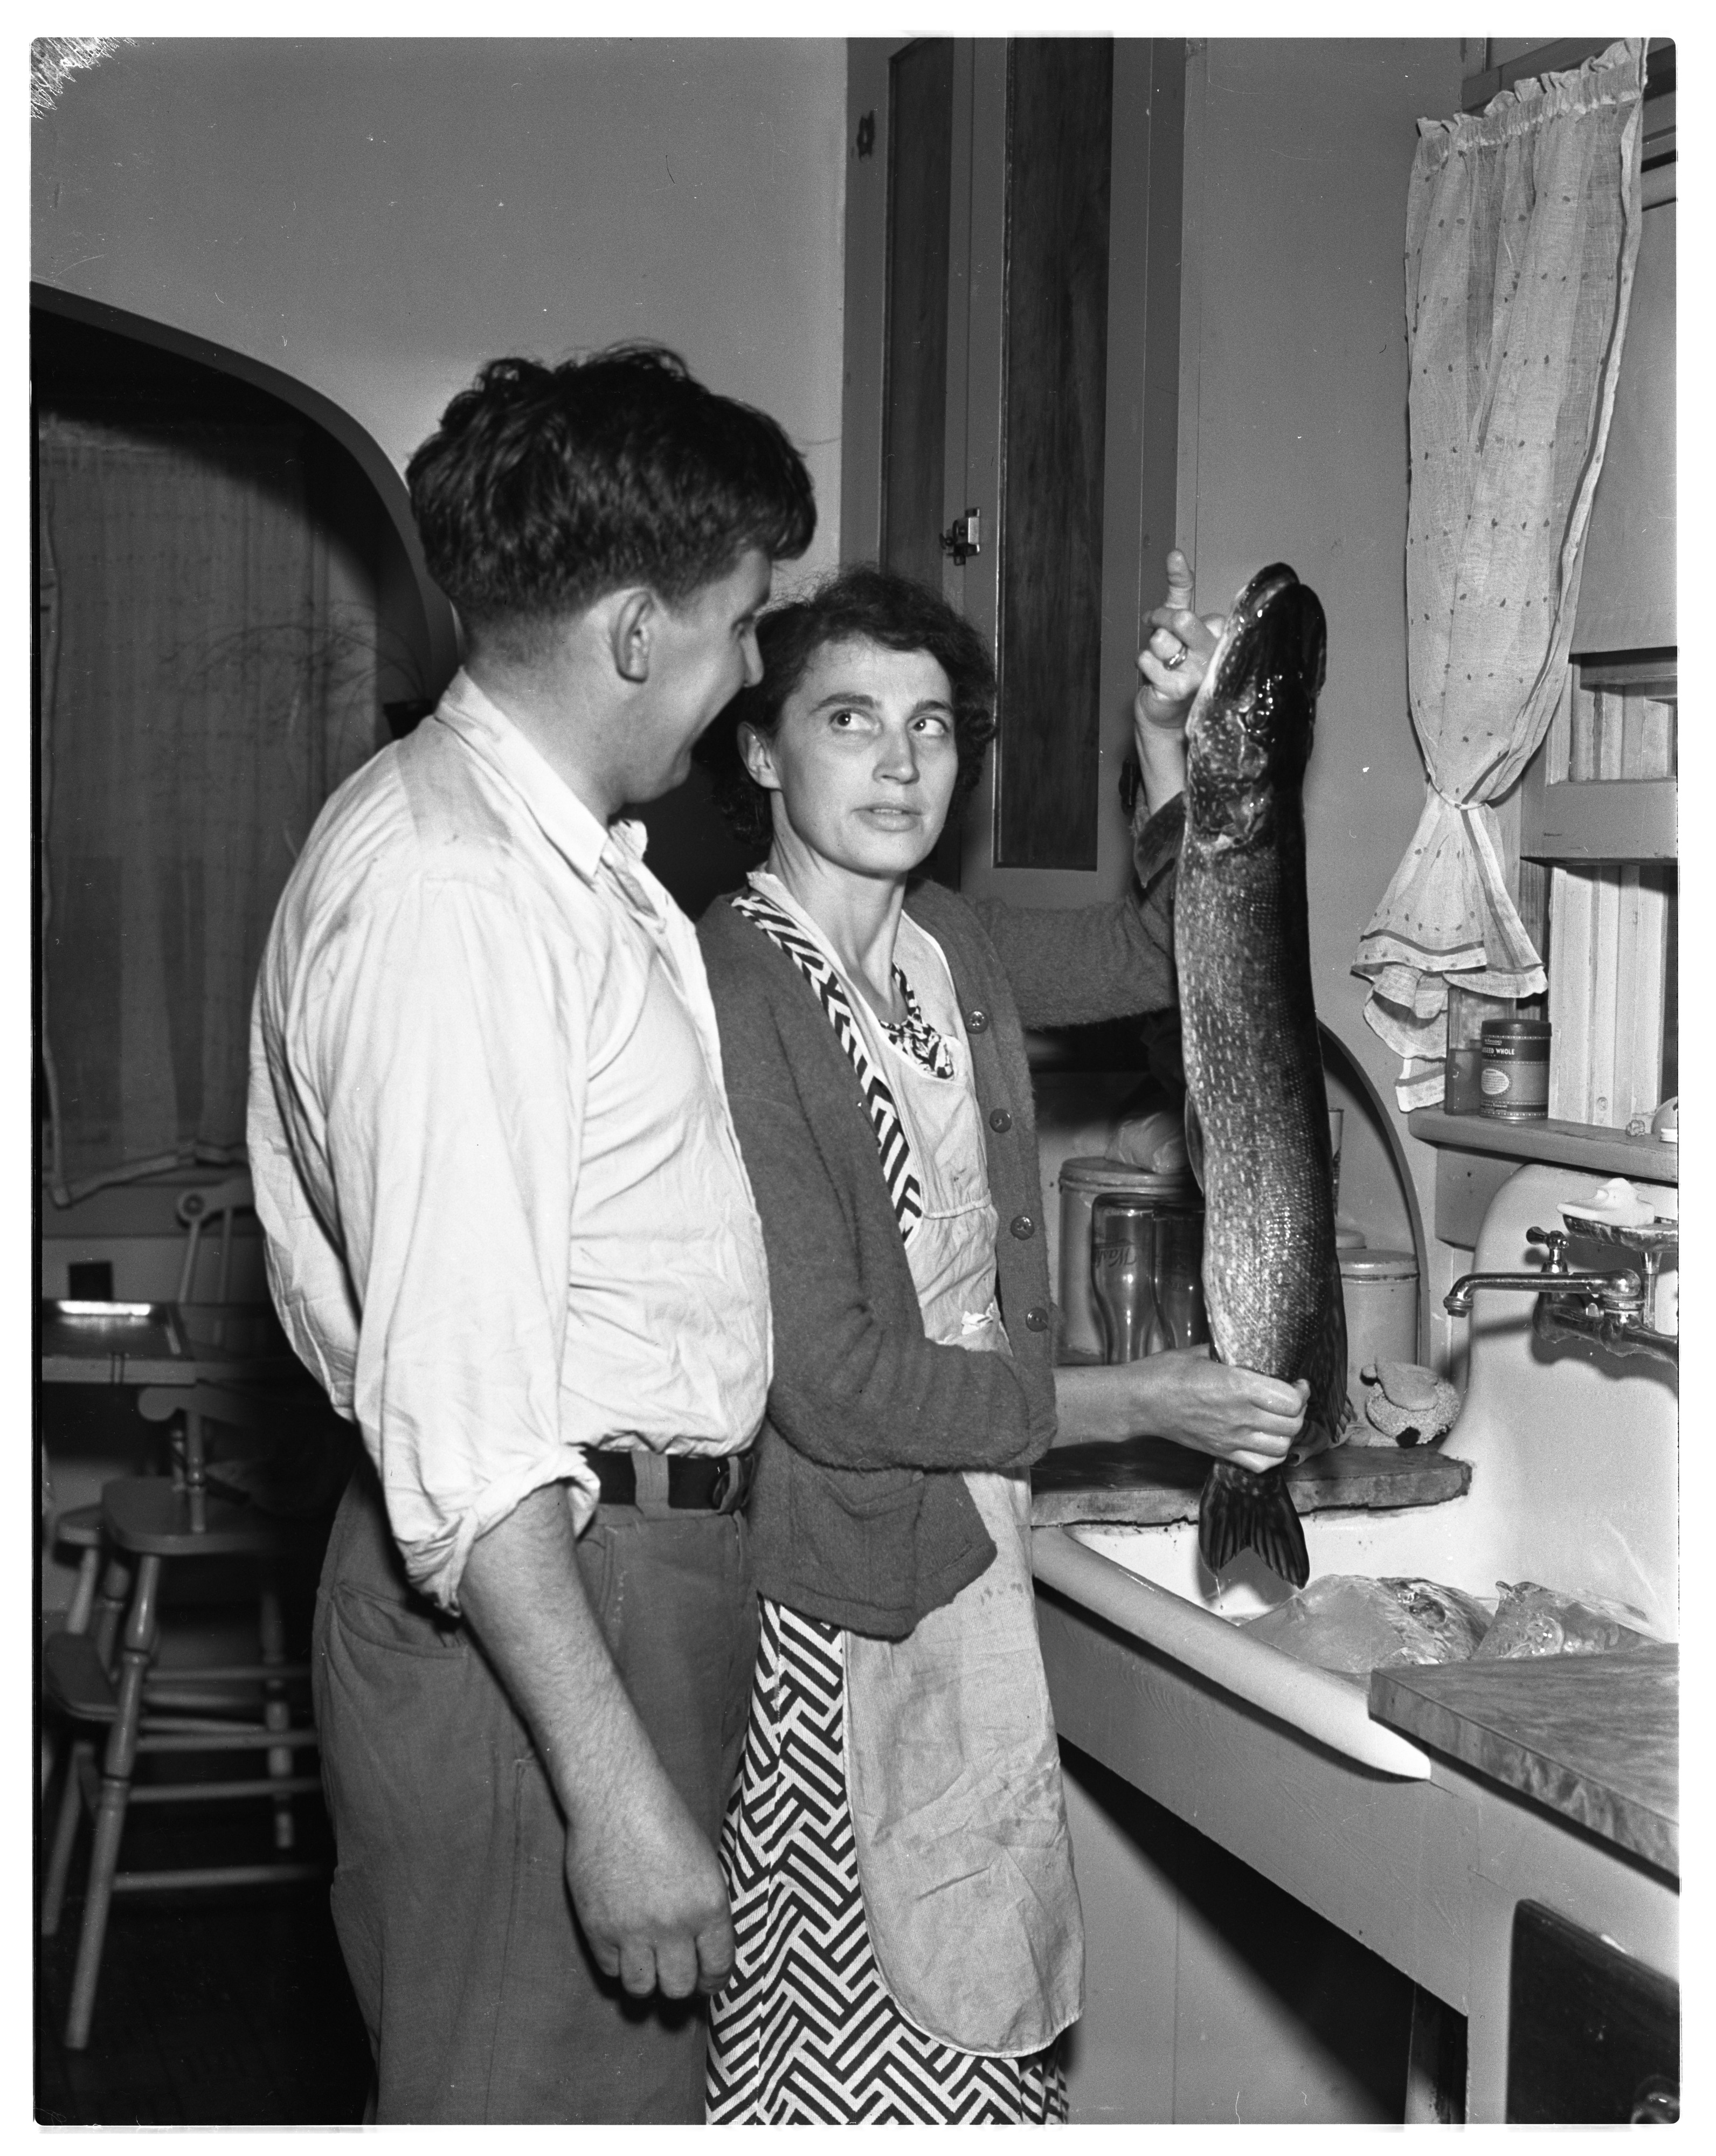 Mr. and Mrs. Howard Haines of 7th St. With Big Pike, June 1937 image